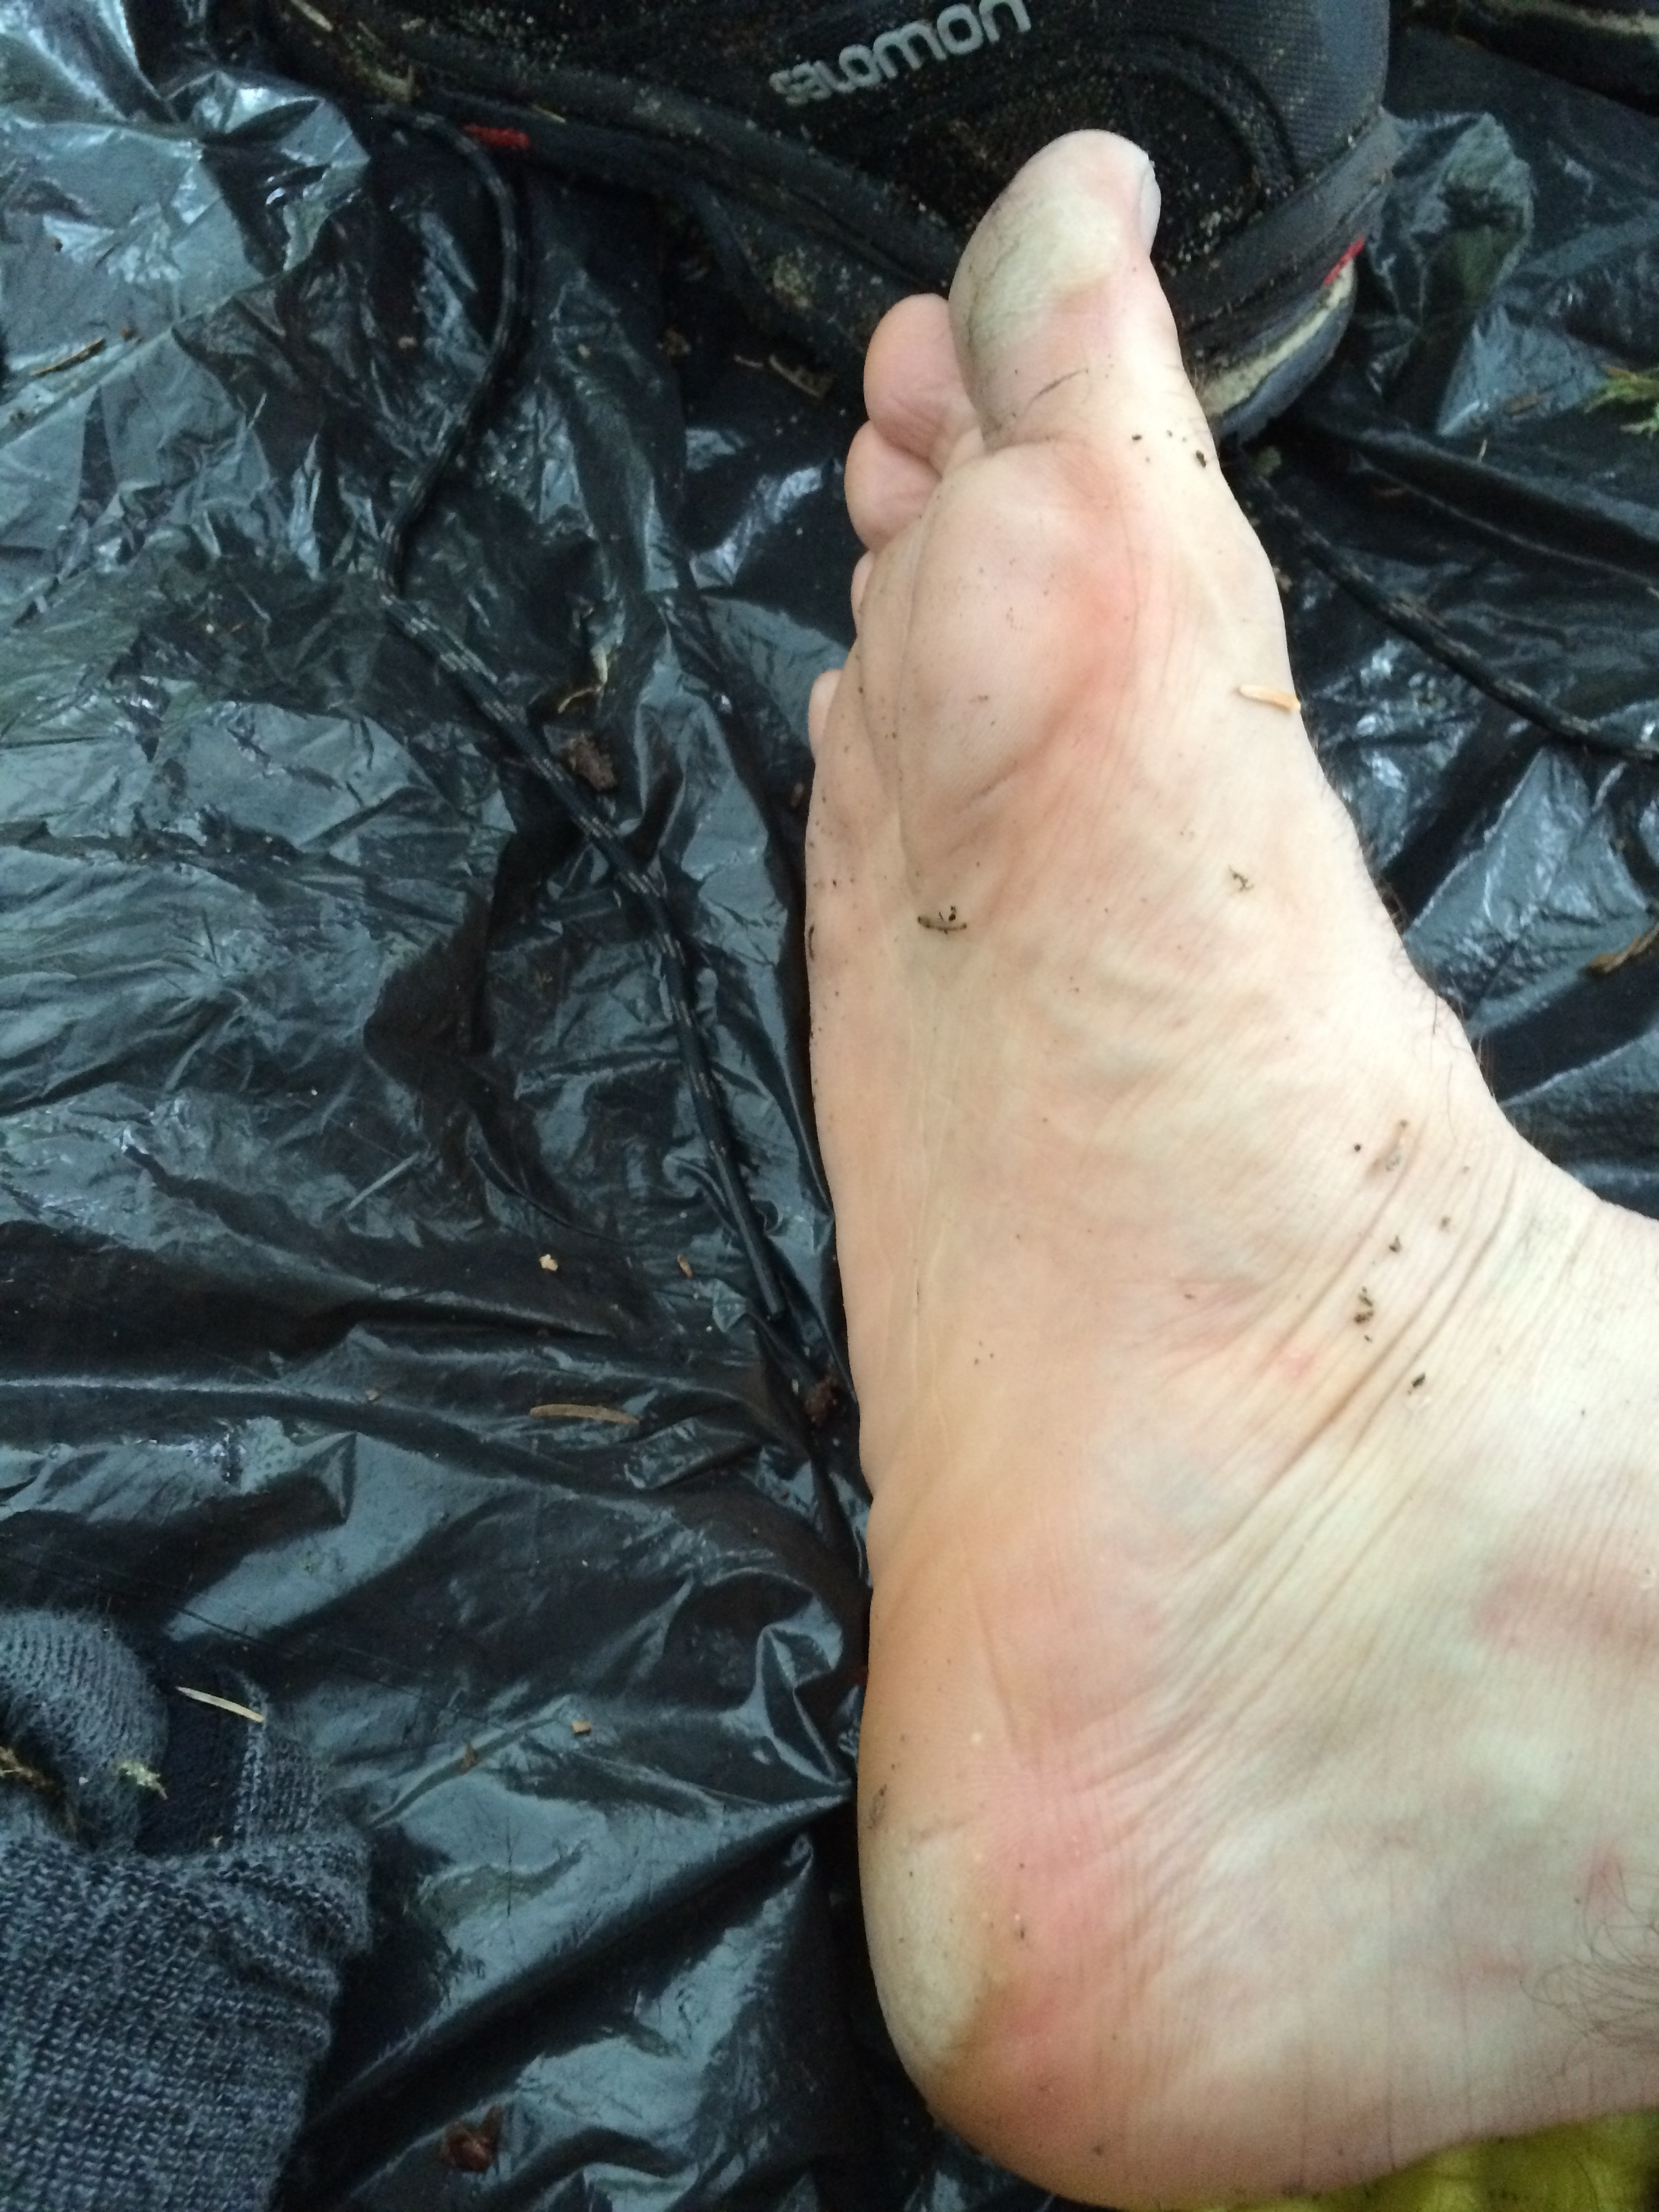 My foot after a long day in wet boots... it doesn't usually look like that LOL